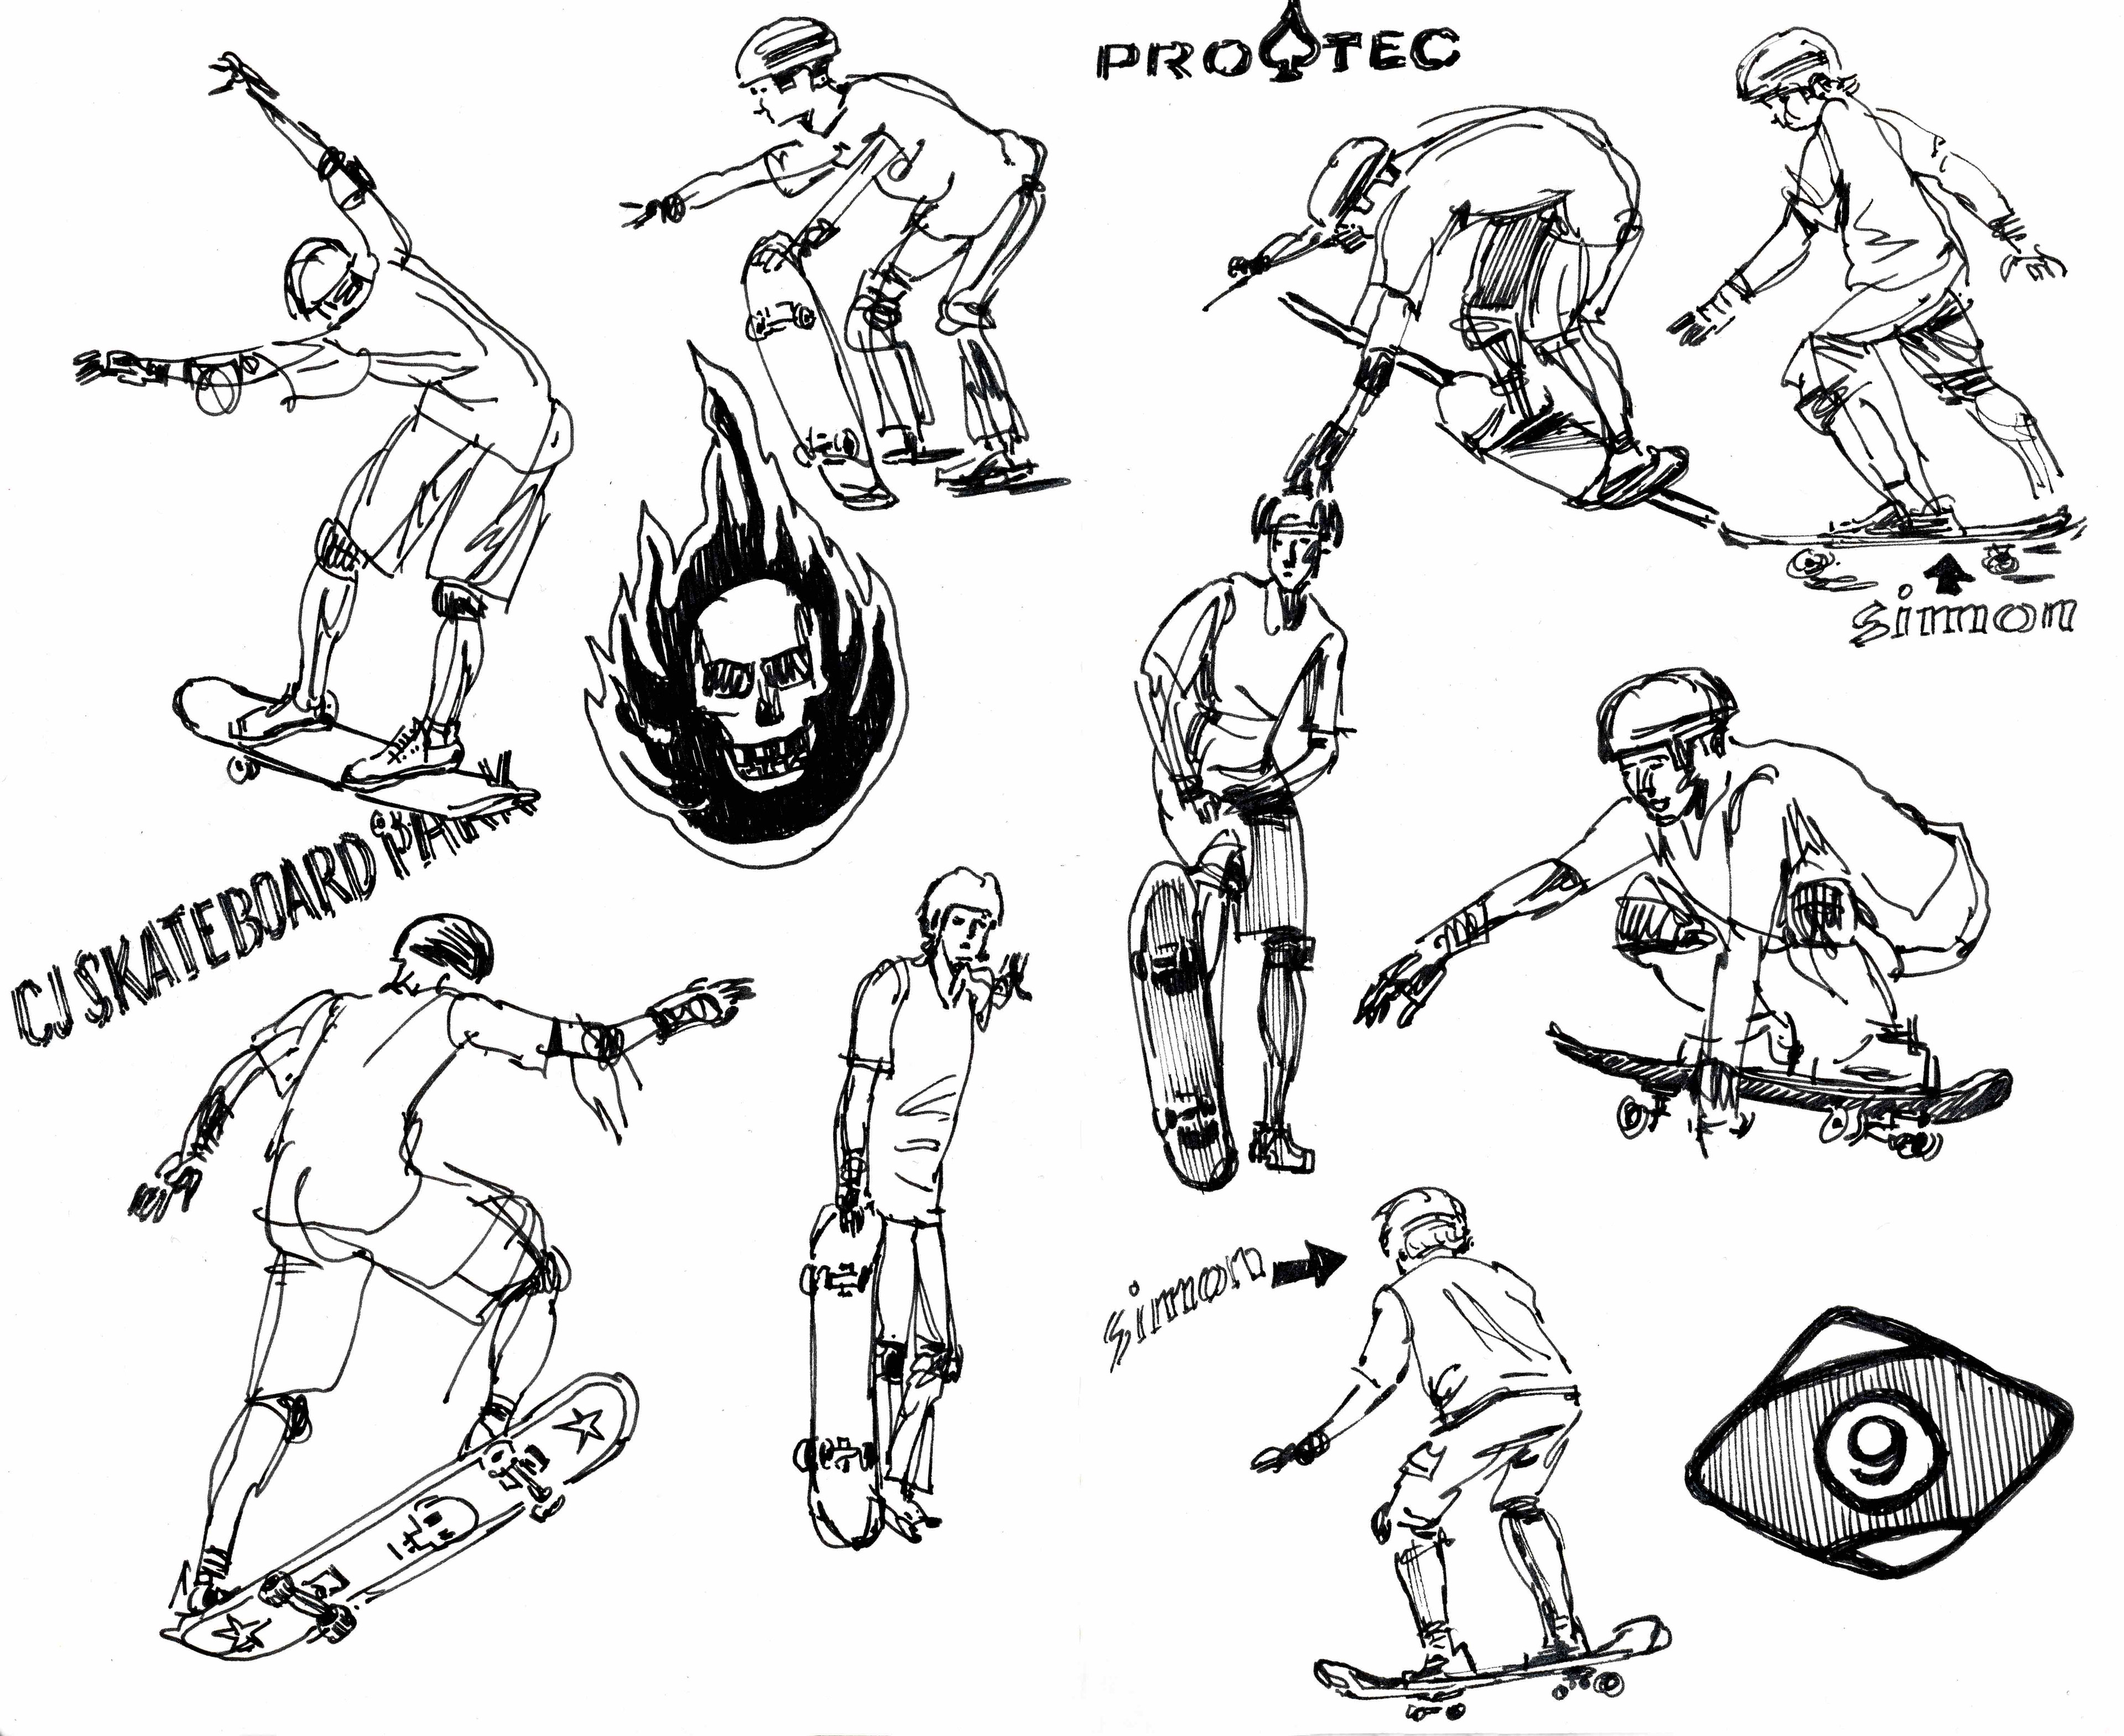 Skateboarders live and in action. On location at CJ Skateboard Park!